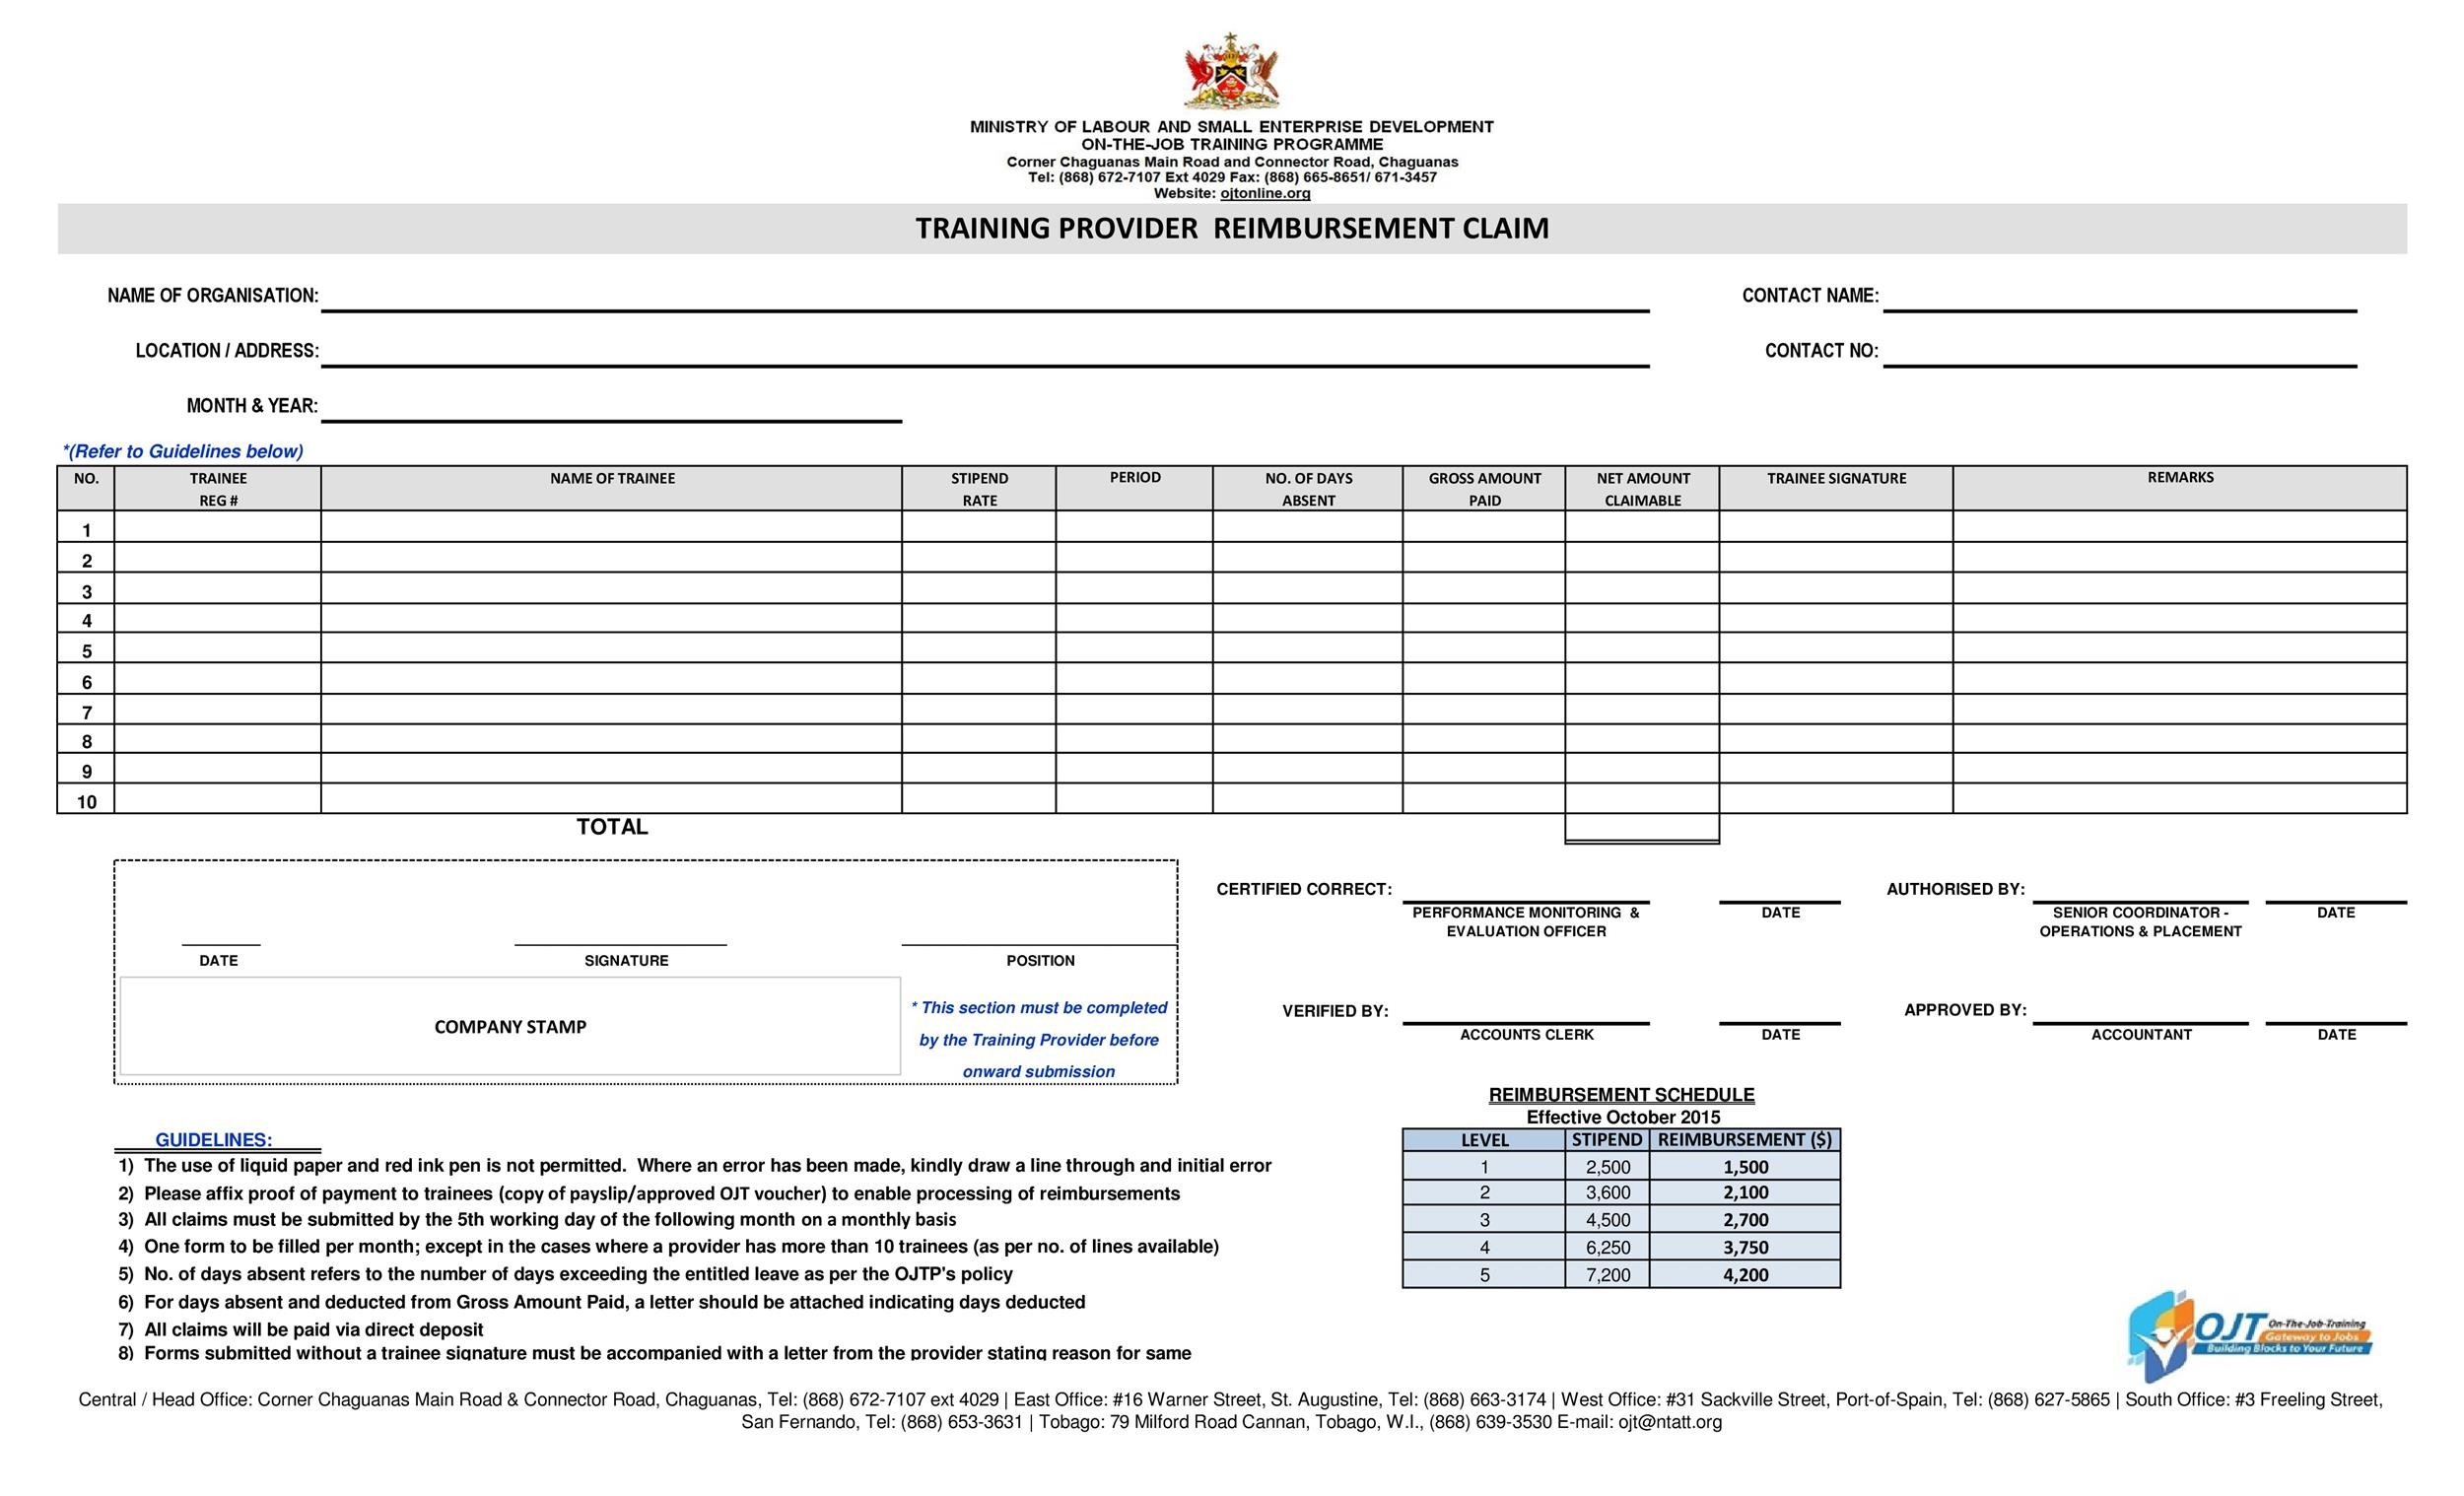 47 Reimbursement Form Templates [Mileage, Expense, Vsp]